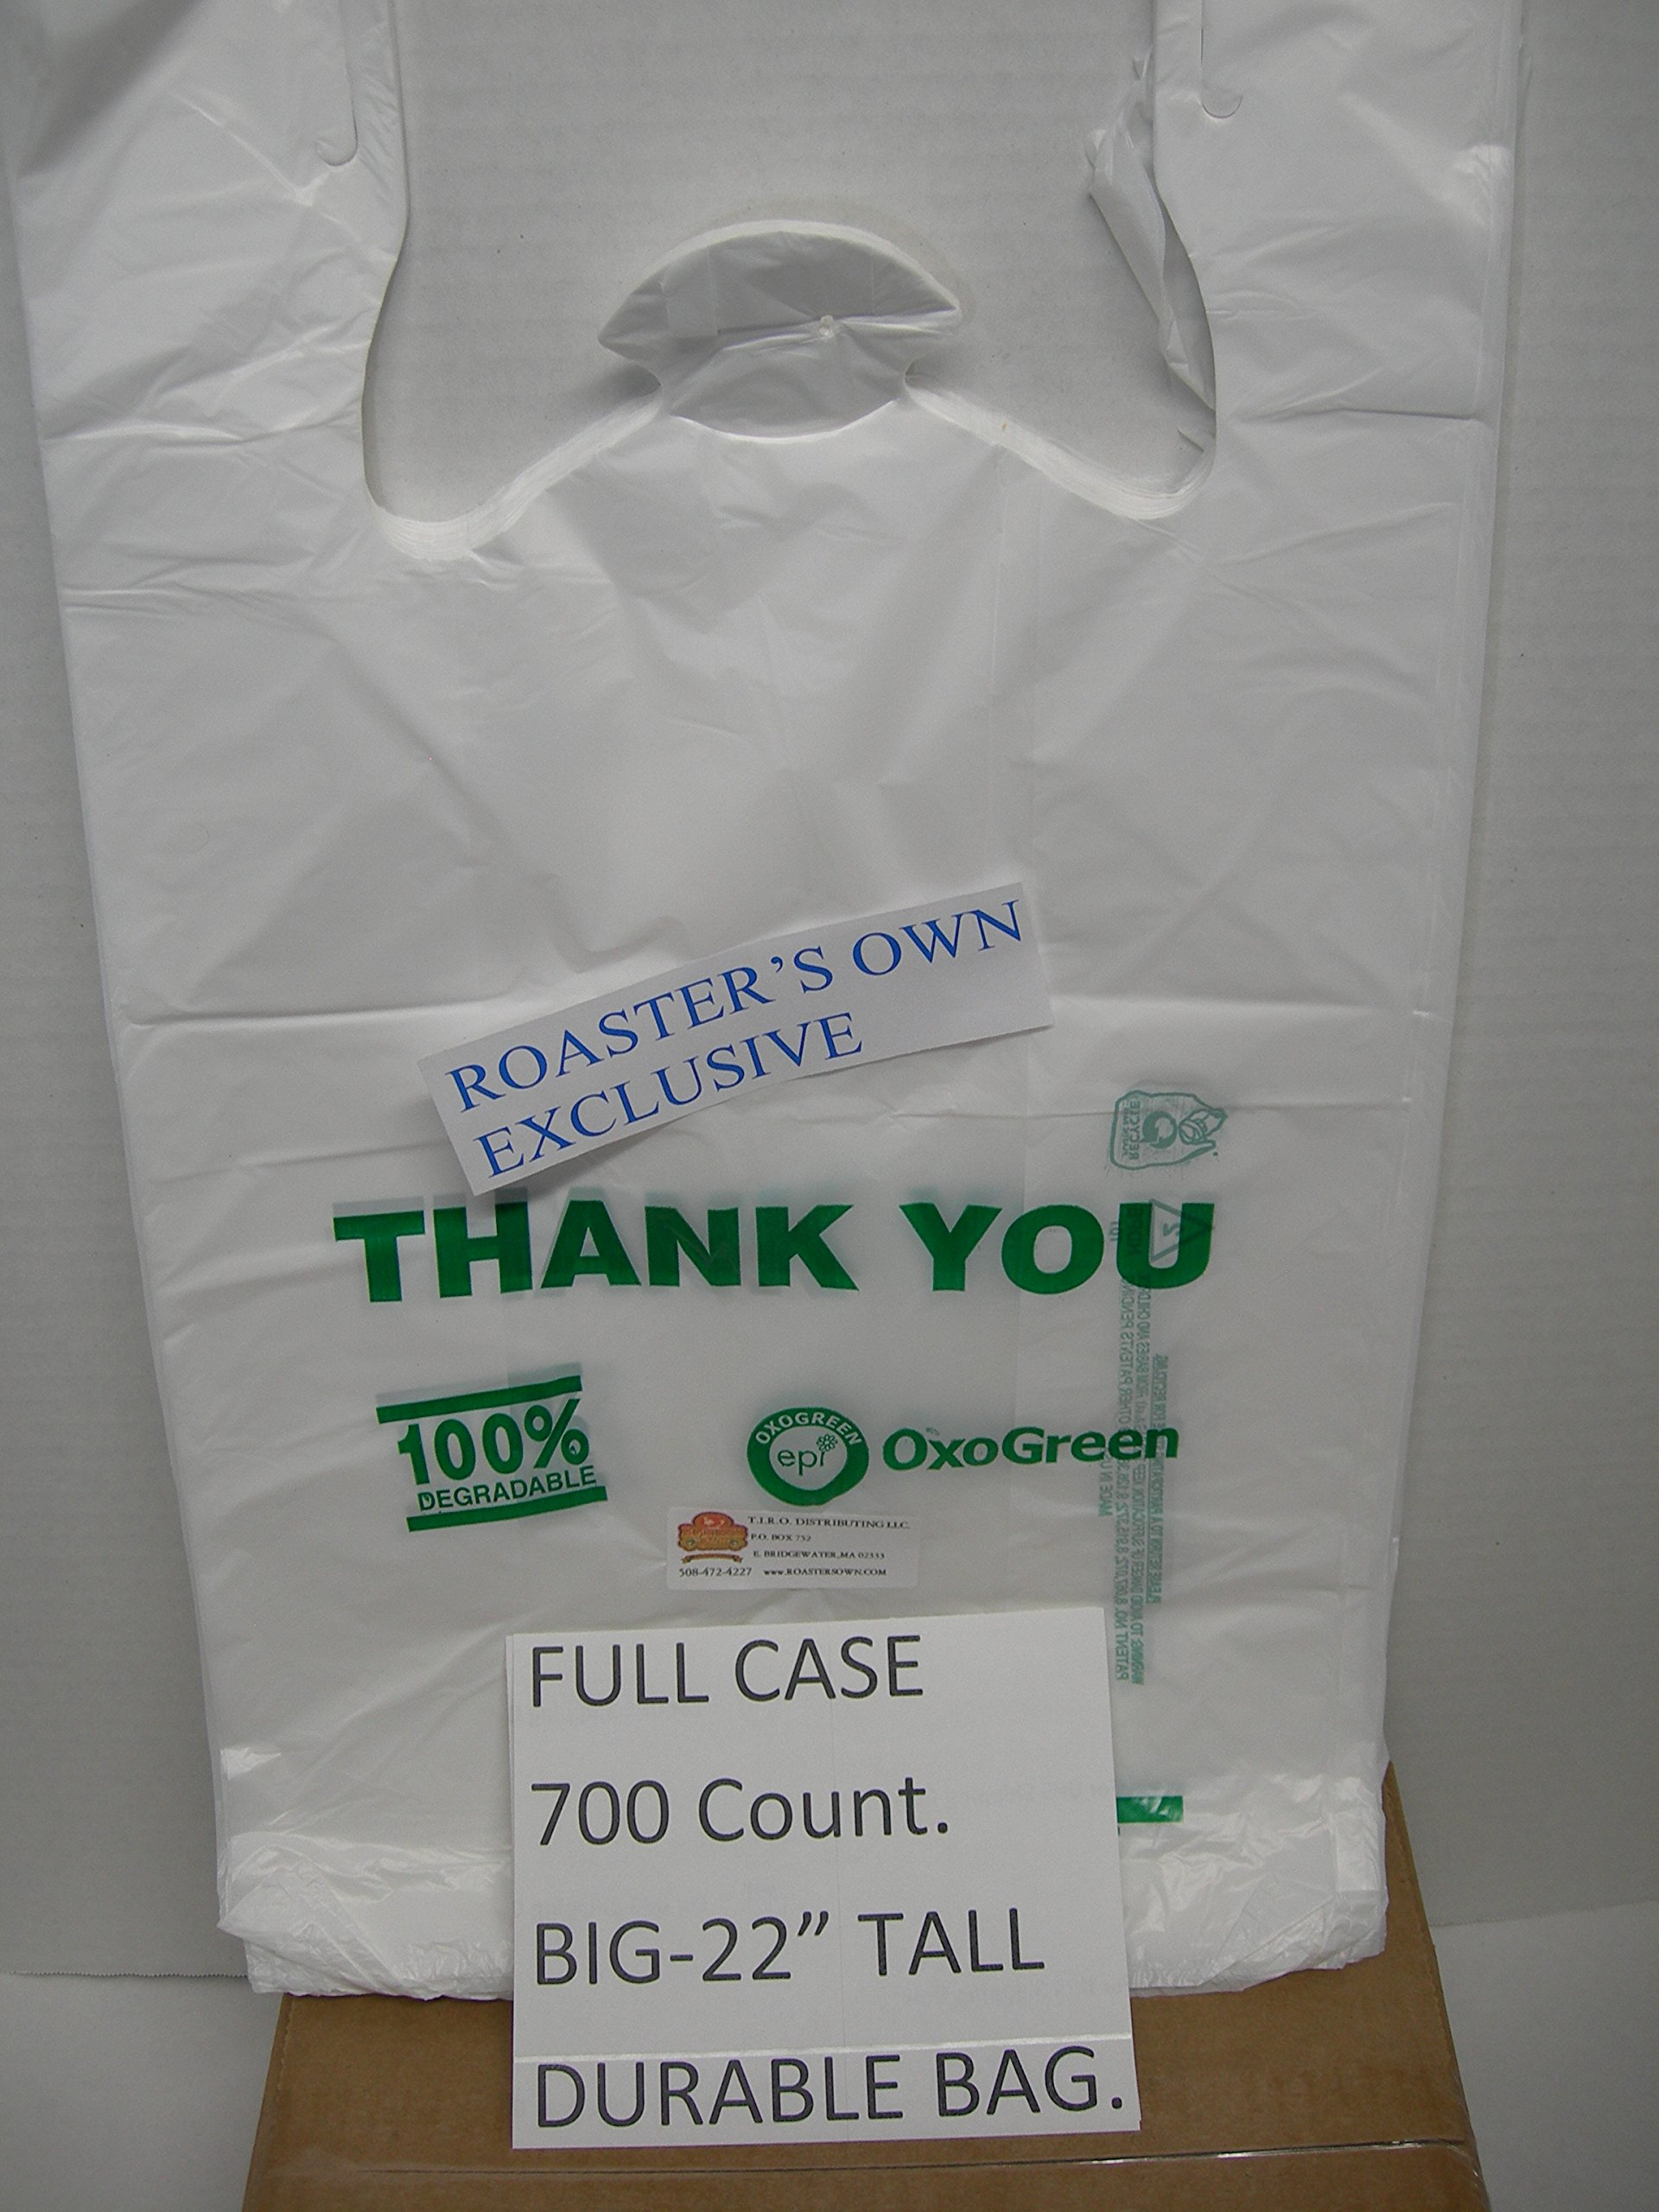 700 Count,100% Biodegradable BIG 12X7X22'' T-Shirt Bag DURABLE Dog poop Pet Waste Cloth Diaper Recyclable Eco.Great! Nice strong bags - As described - Fast shipping - Professional seller!